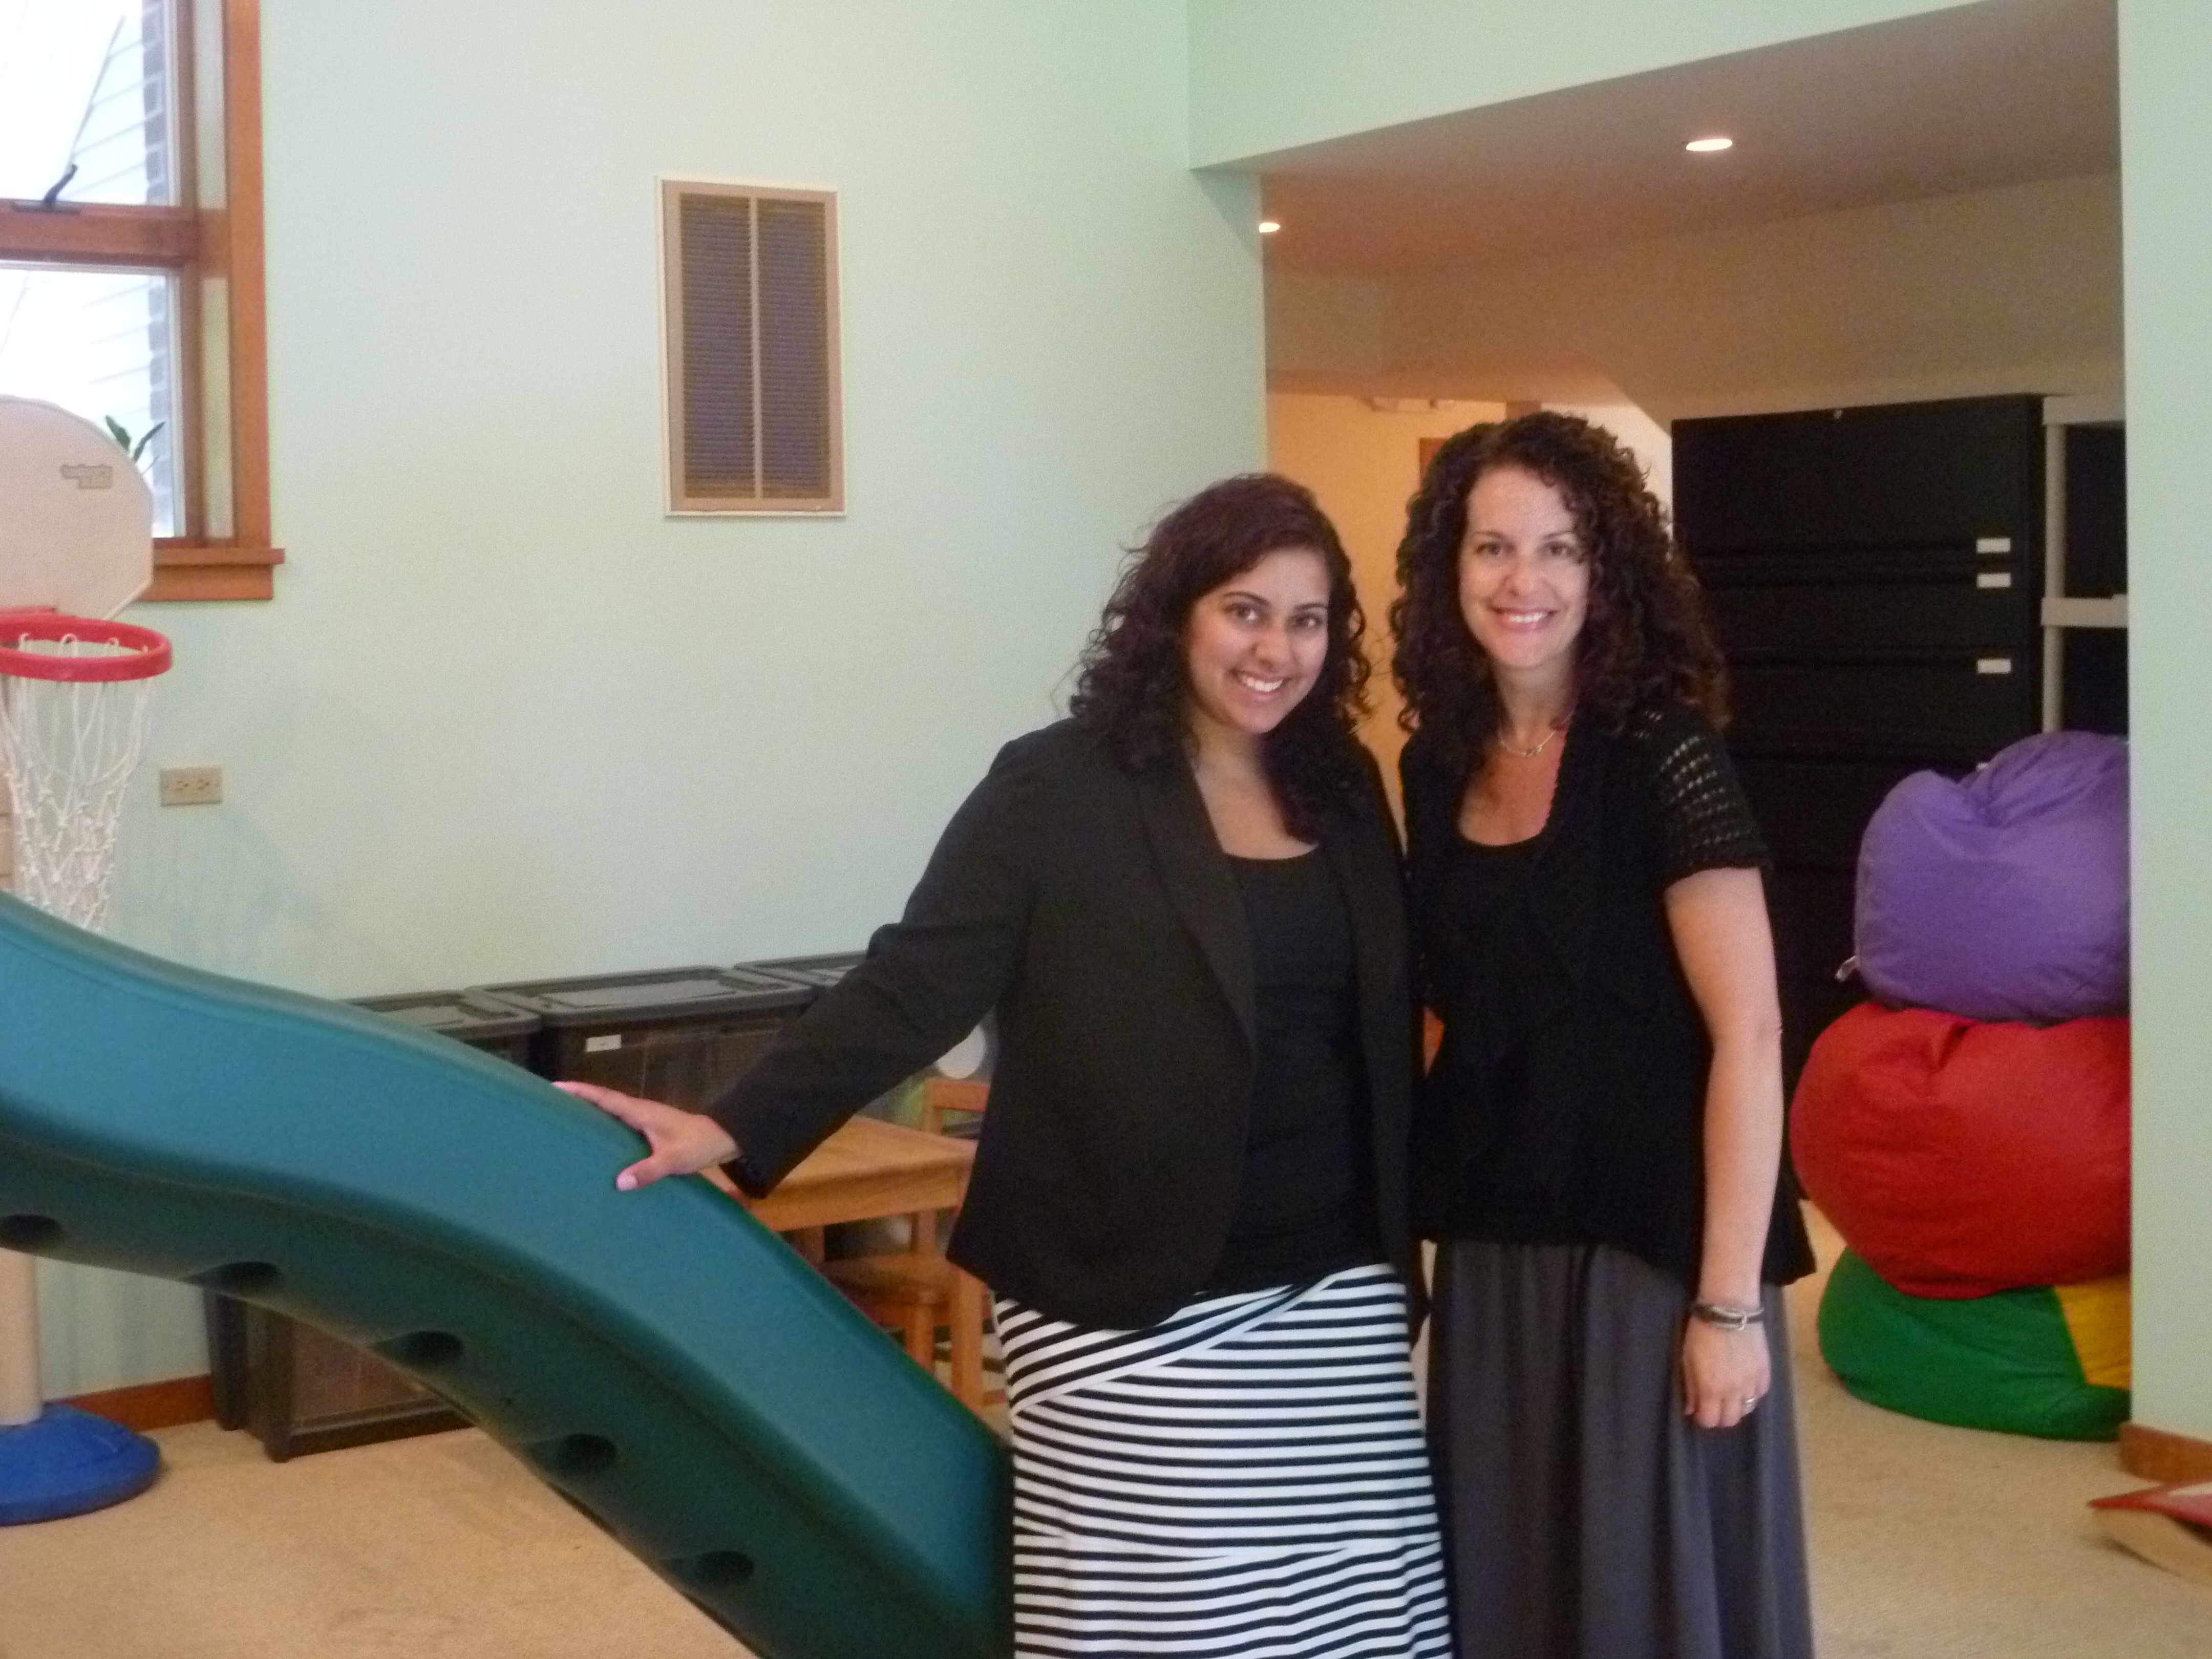 Shaina Rotstein and Carla Commissio-Kelvin recently opened Talk of the Town, a speech and language center in Mt. Kisco.